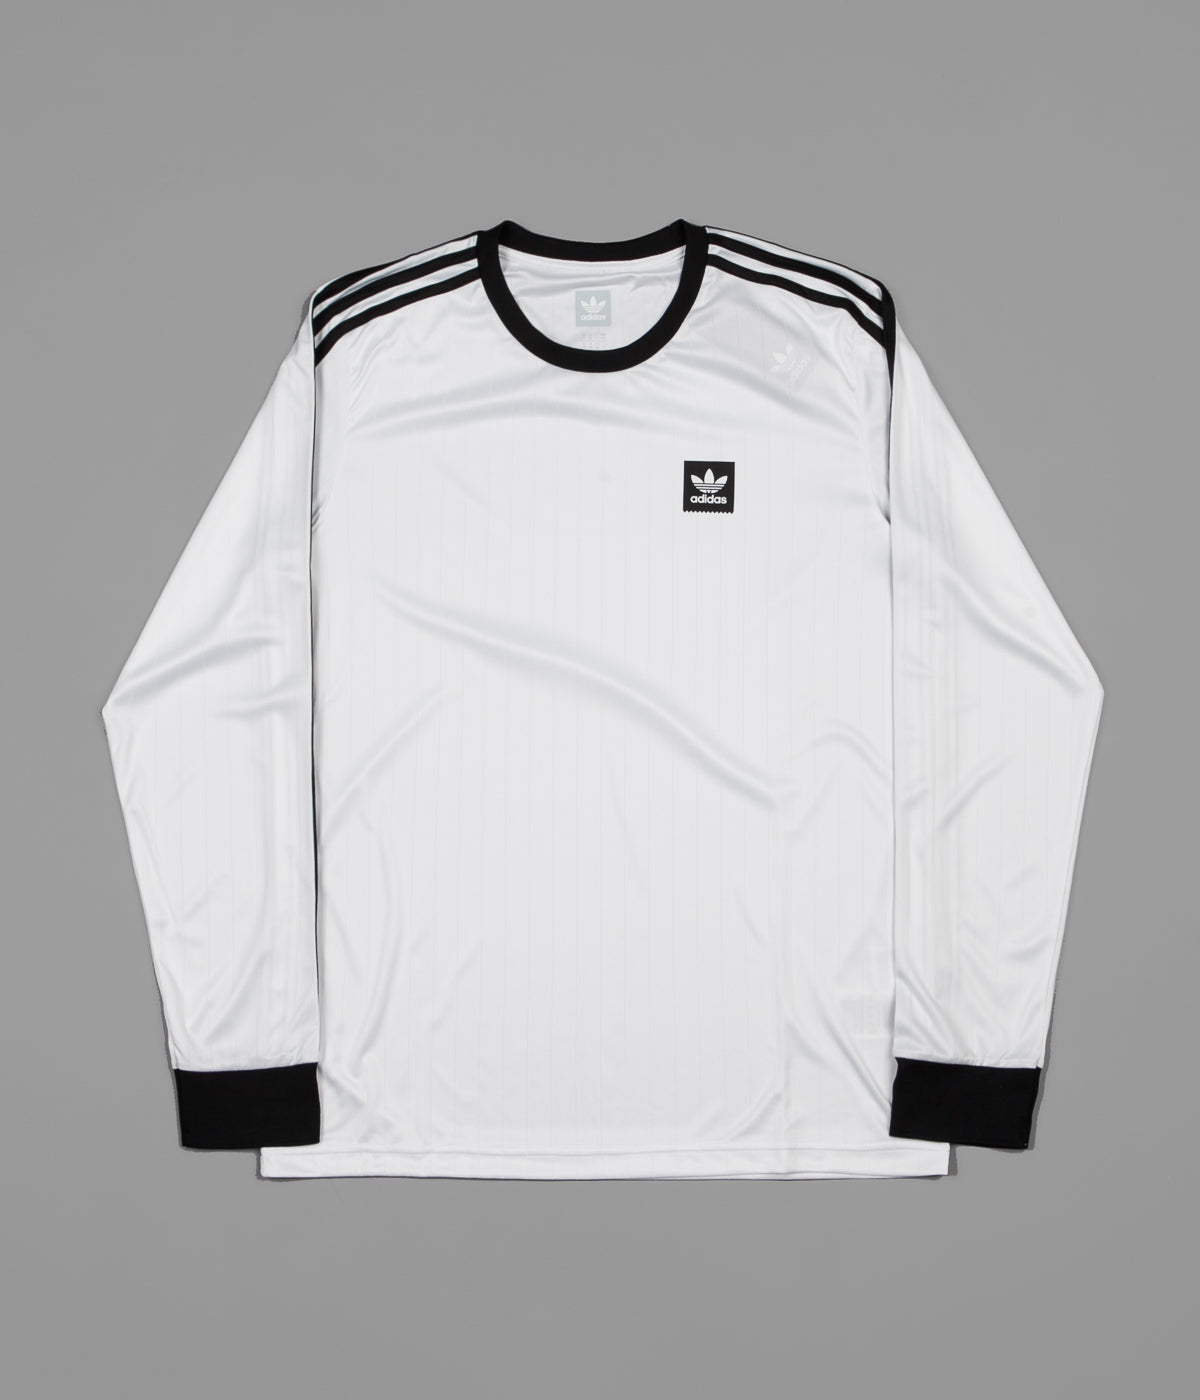 ... Adidas Club Long Sleeve Jersey - White   Black ... 51fdd26a5